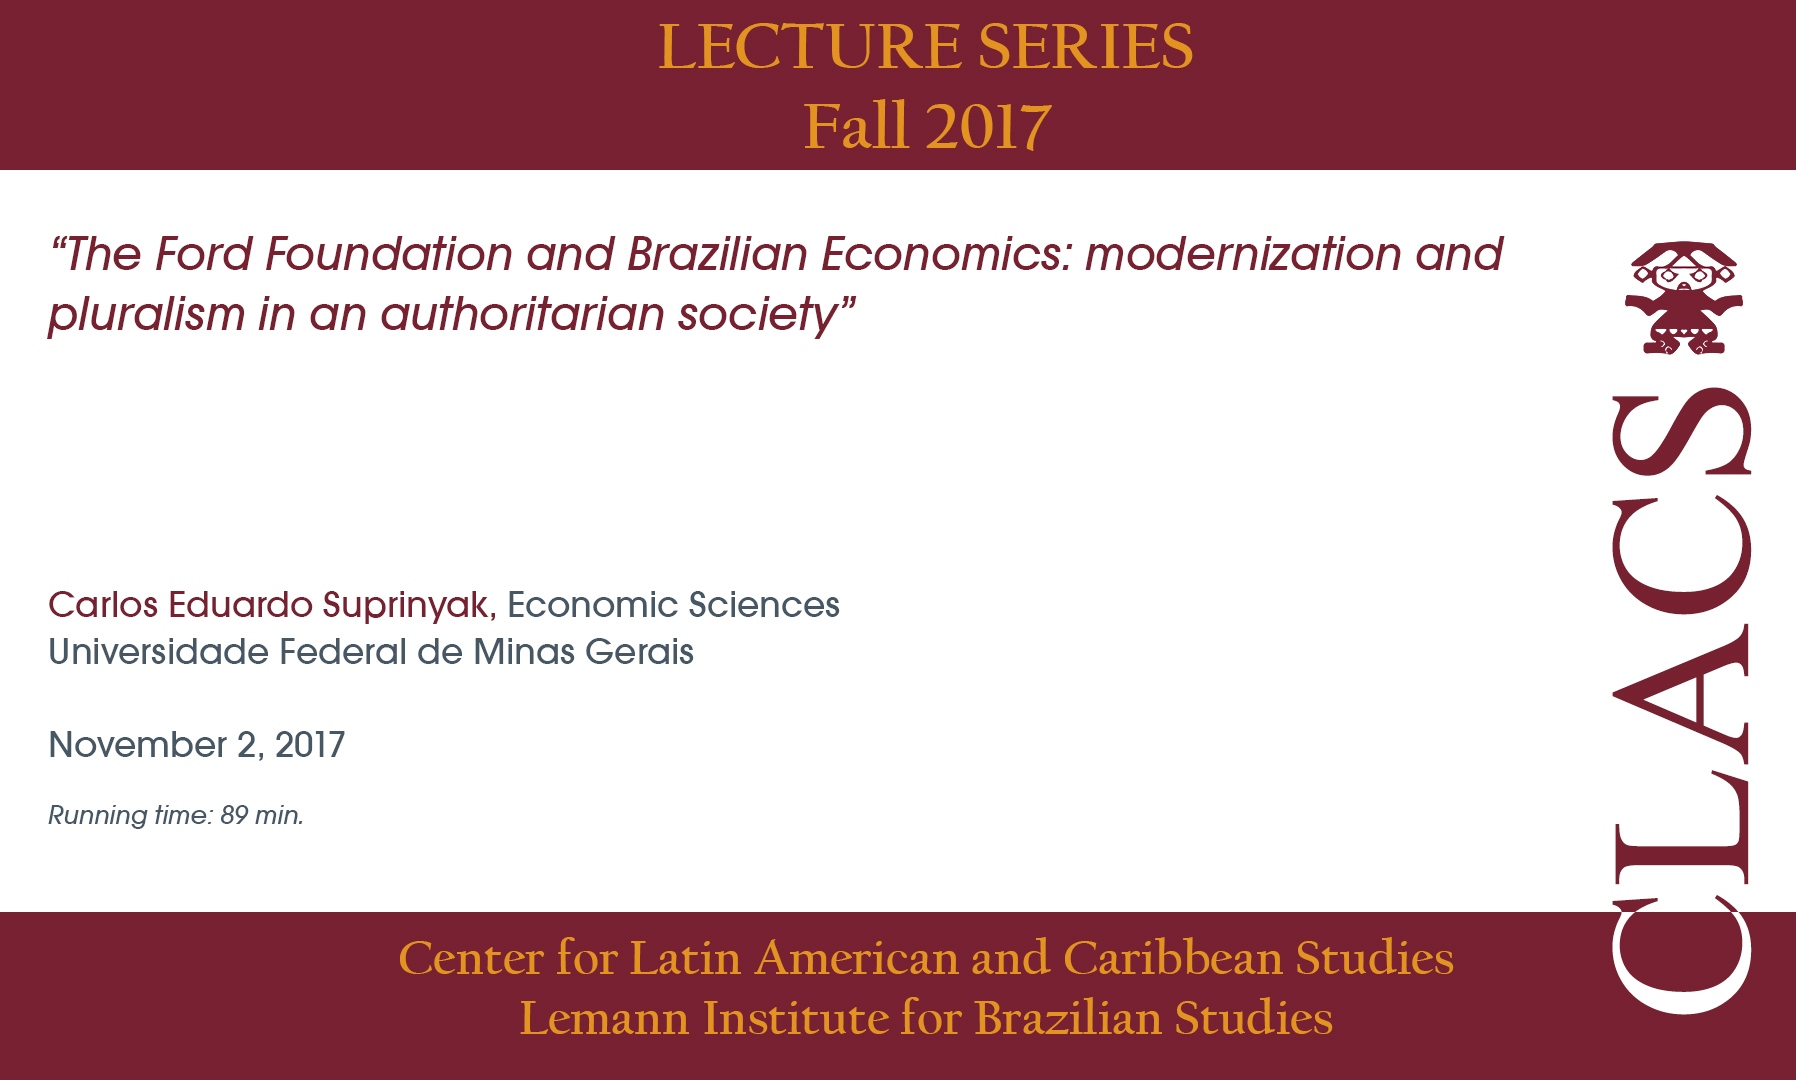 The Ford Foundation and Brazilian Economics: modernization and pluralism in an authoritarian society